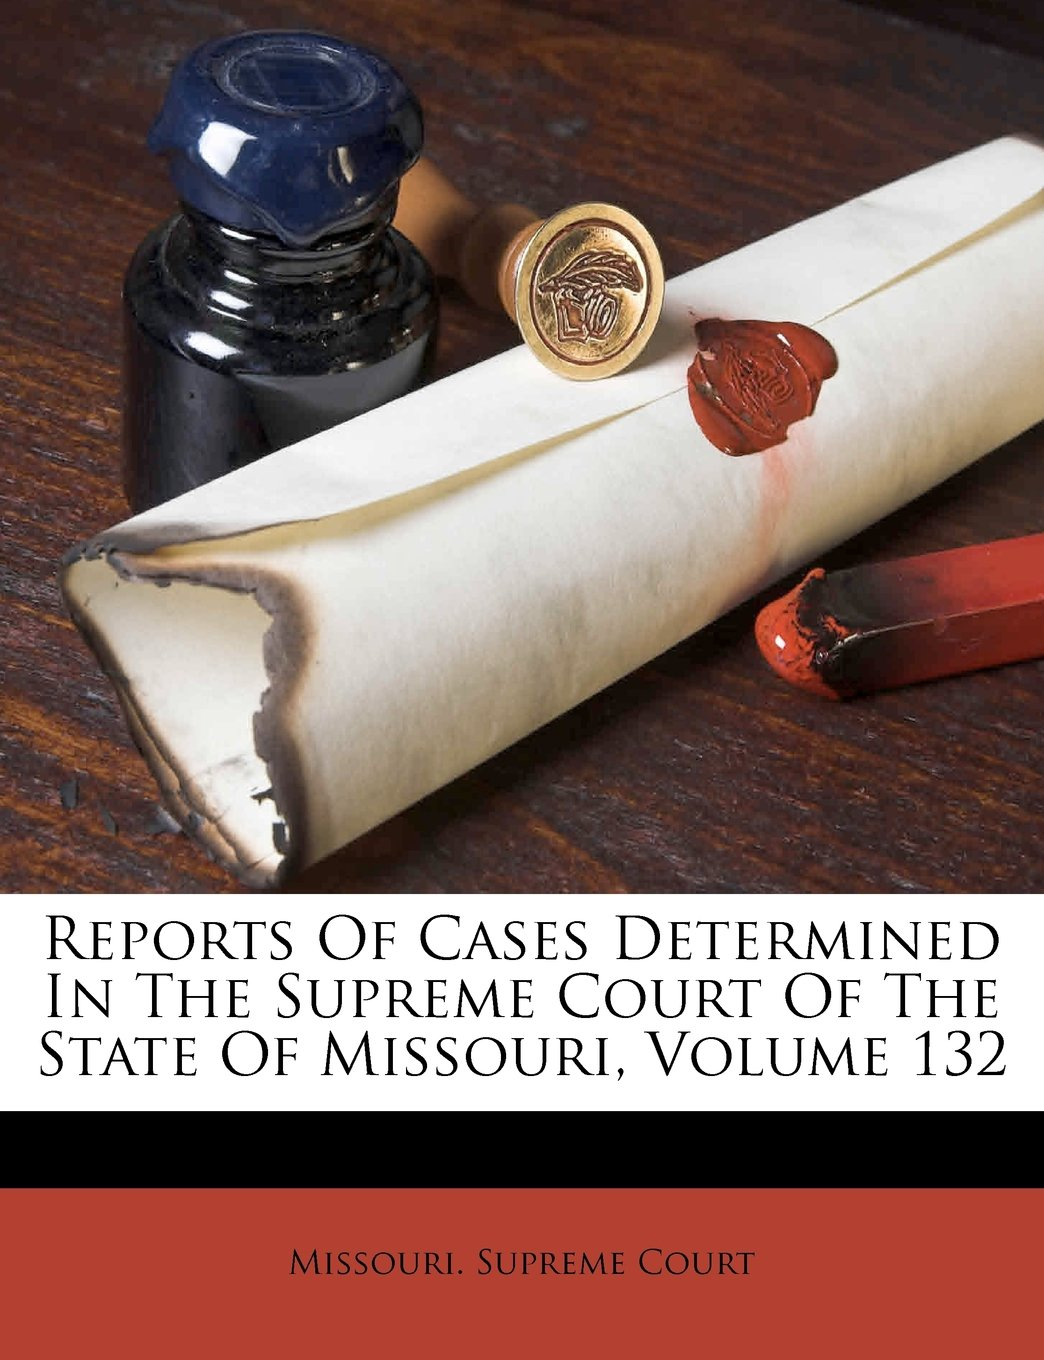 Download Reports Of Cases Determined In The Supreme Court Of The State Of Missouri, Volume 132 ebook